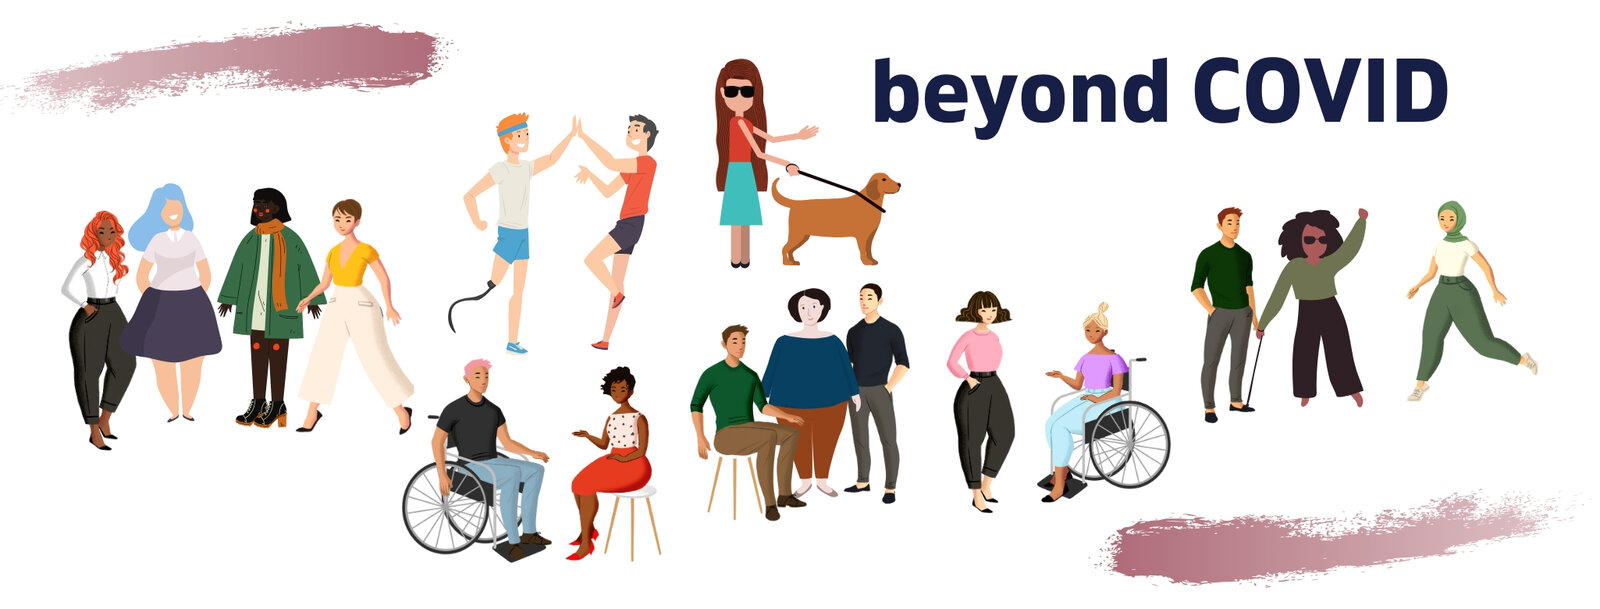 image of group of people talking together.  Text reads 'Beyond COVID'